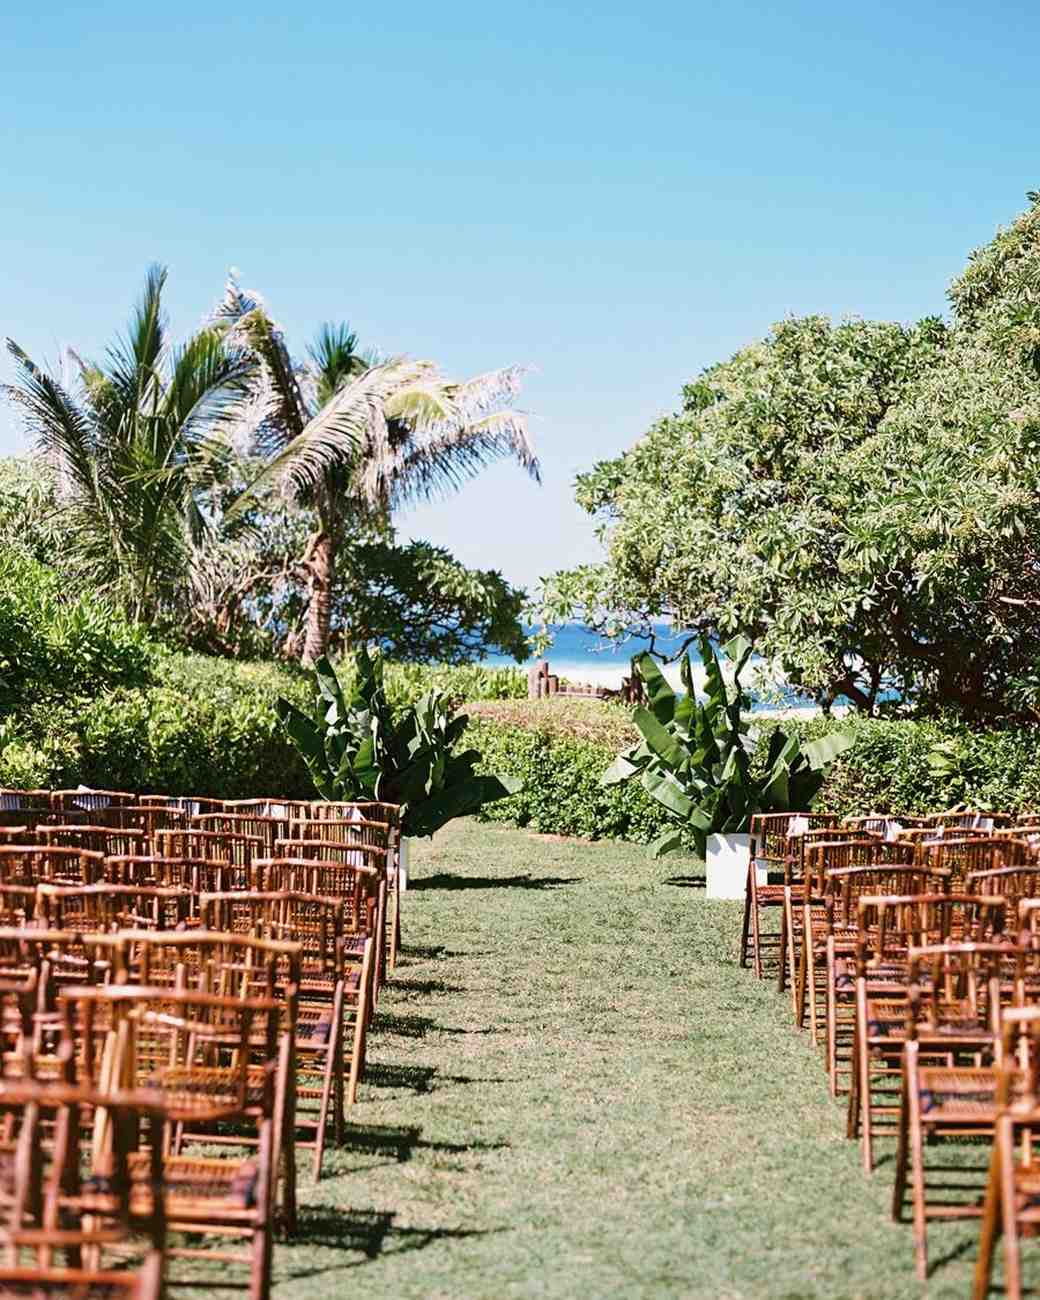 Botanical Gardens Wedding: 25 Beautiful Garden Wedding Venues